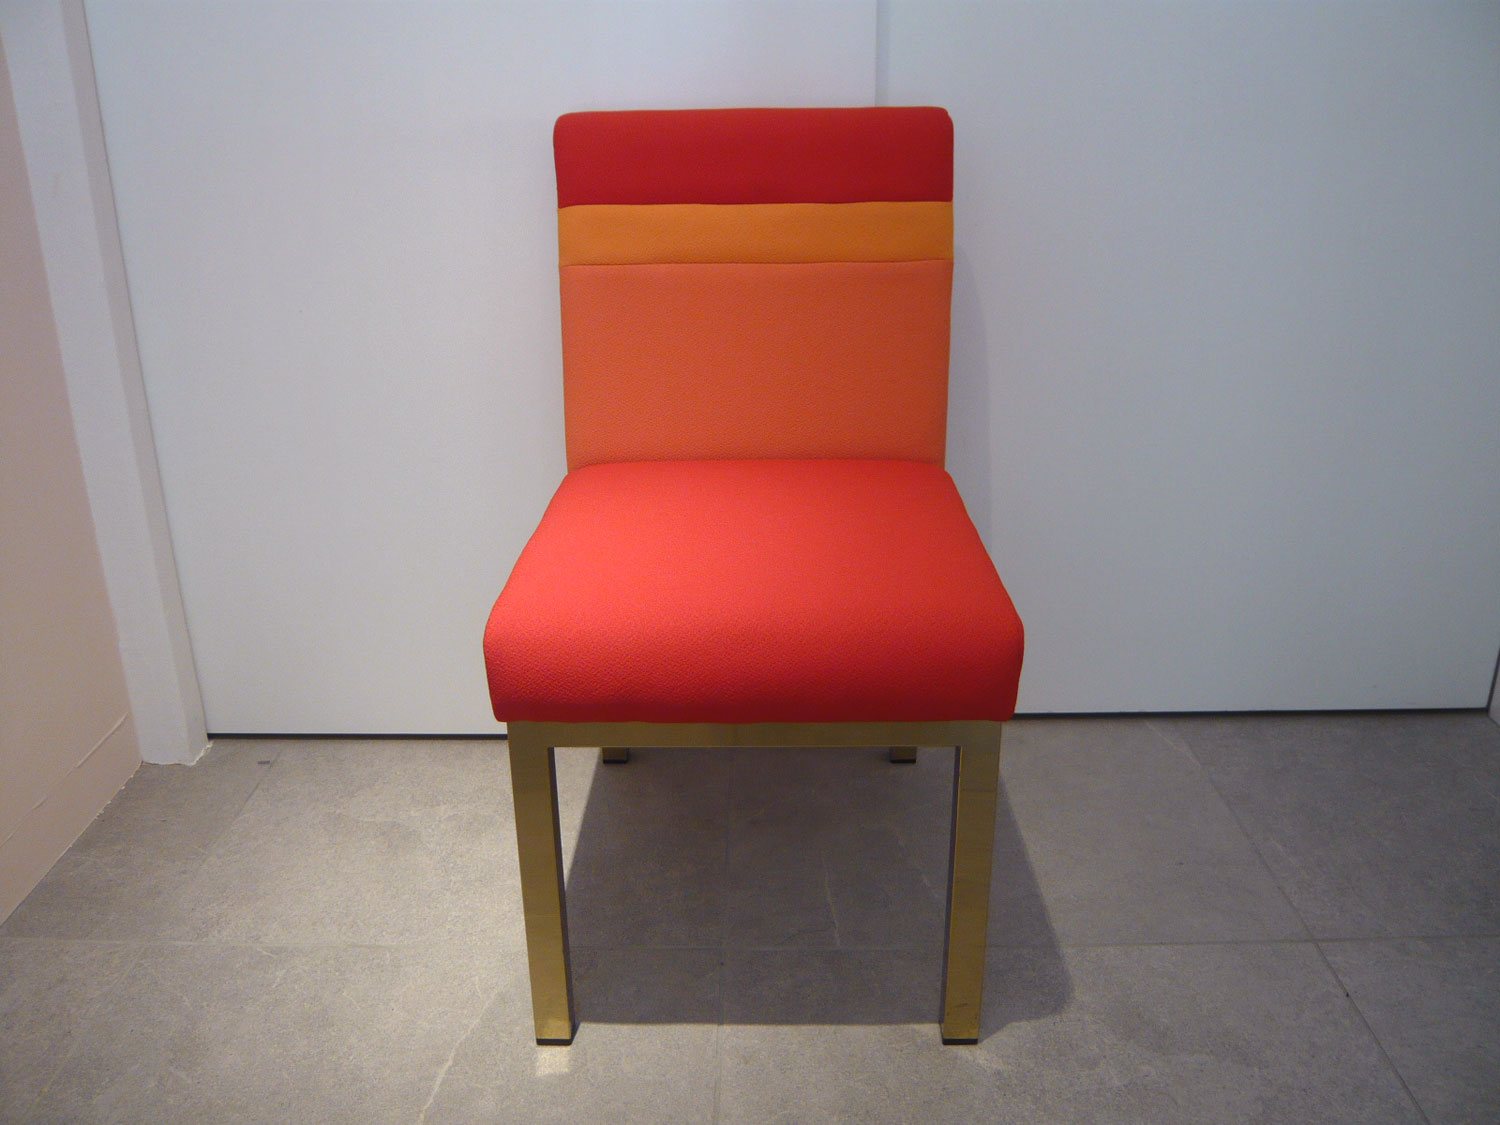 #018 COROMO CHAIR - 3 tone